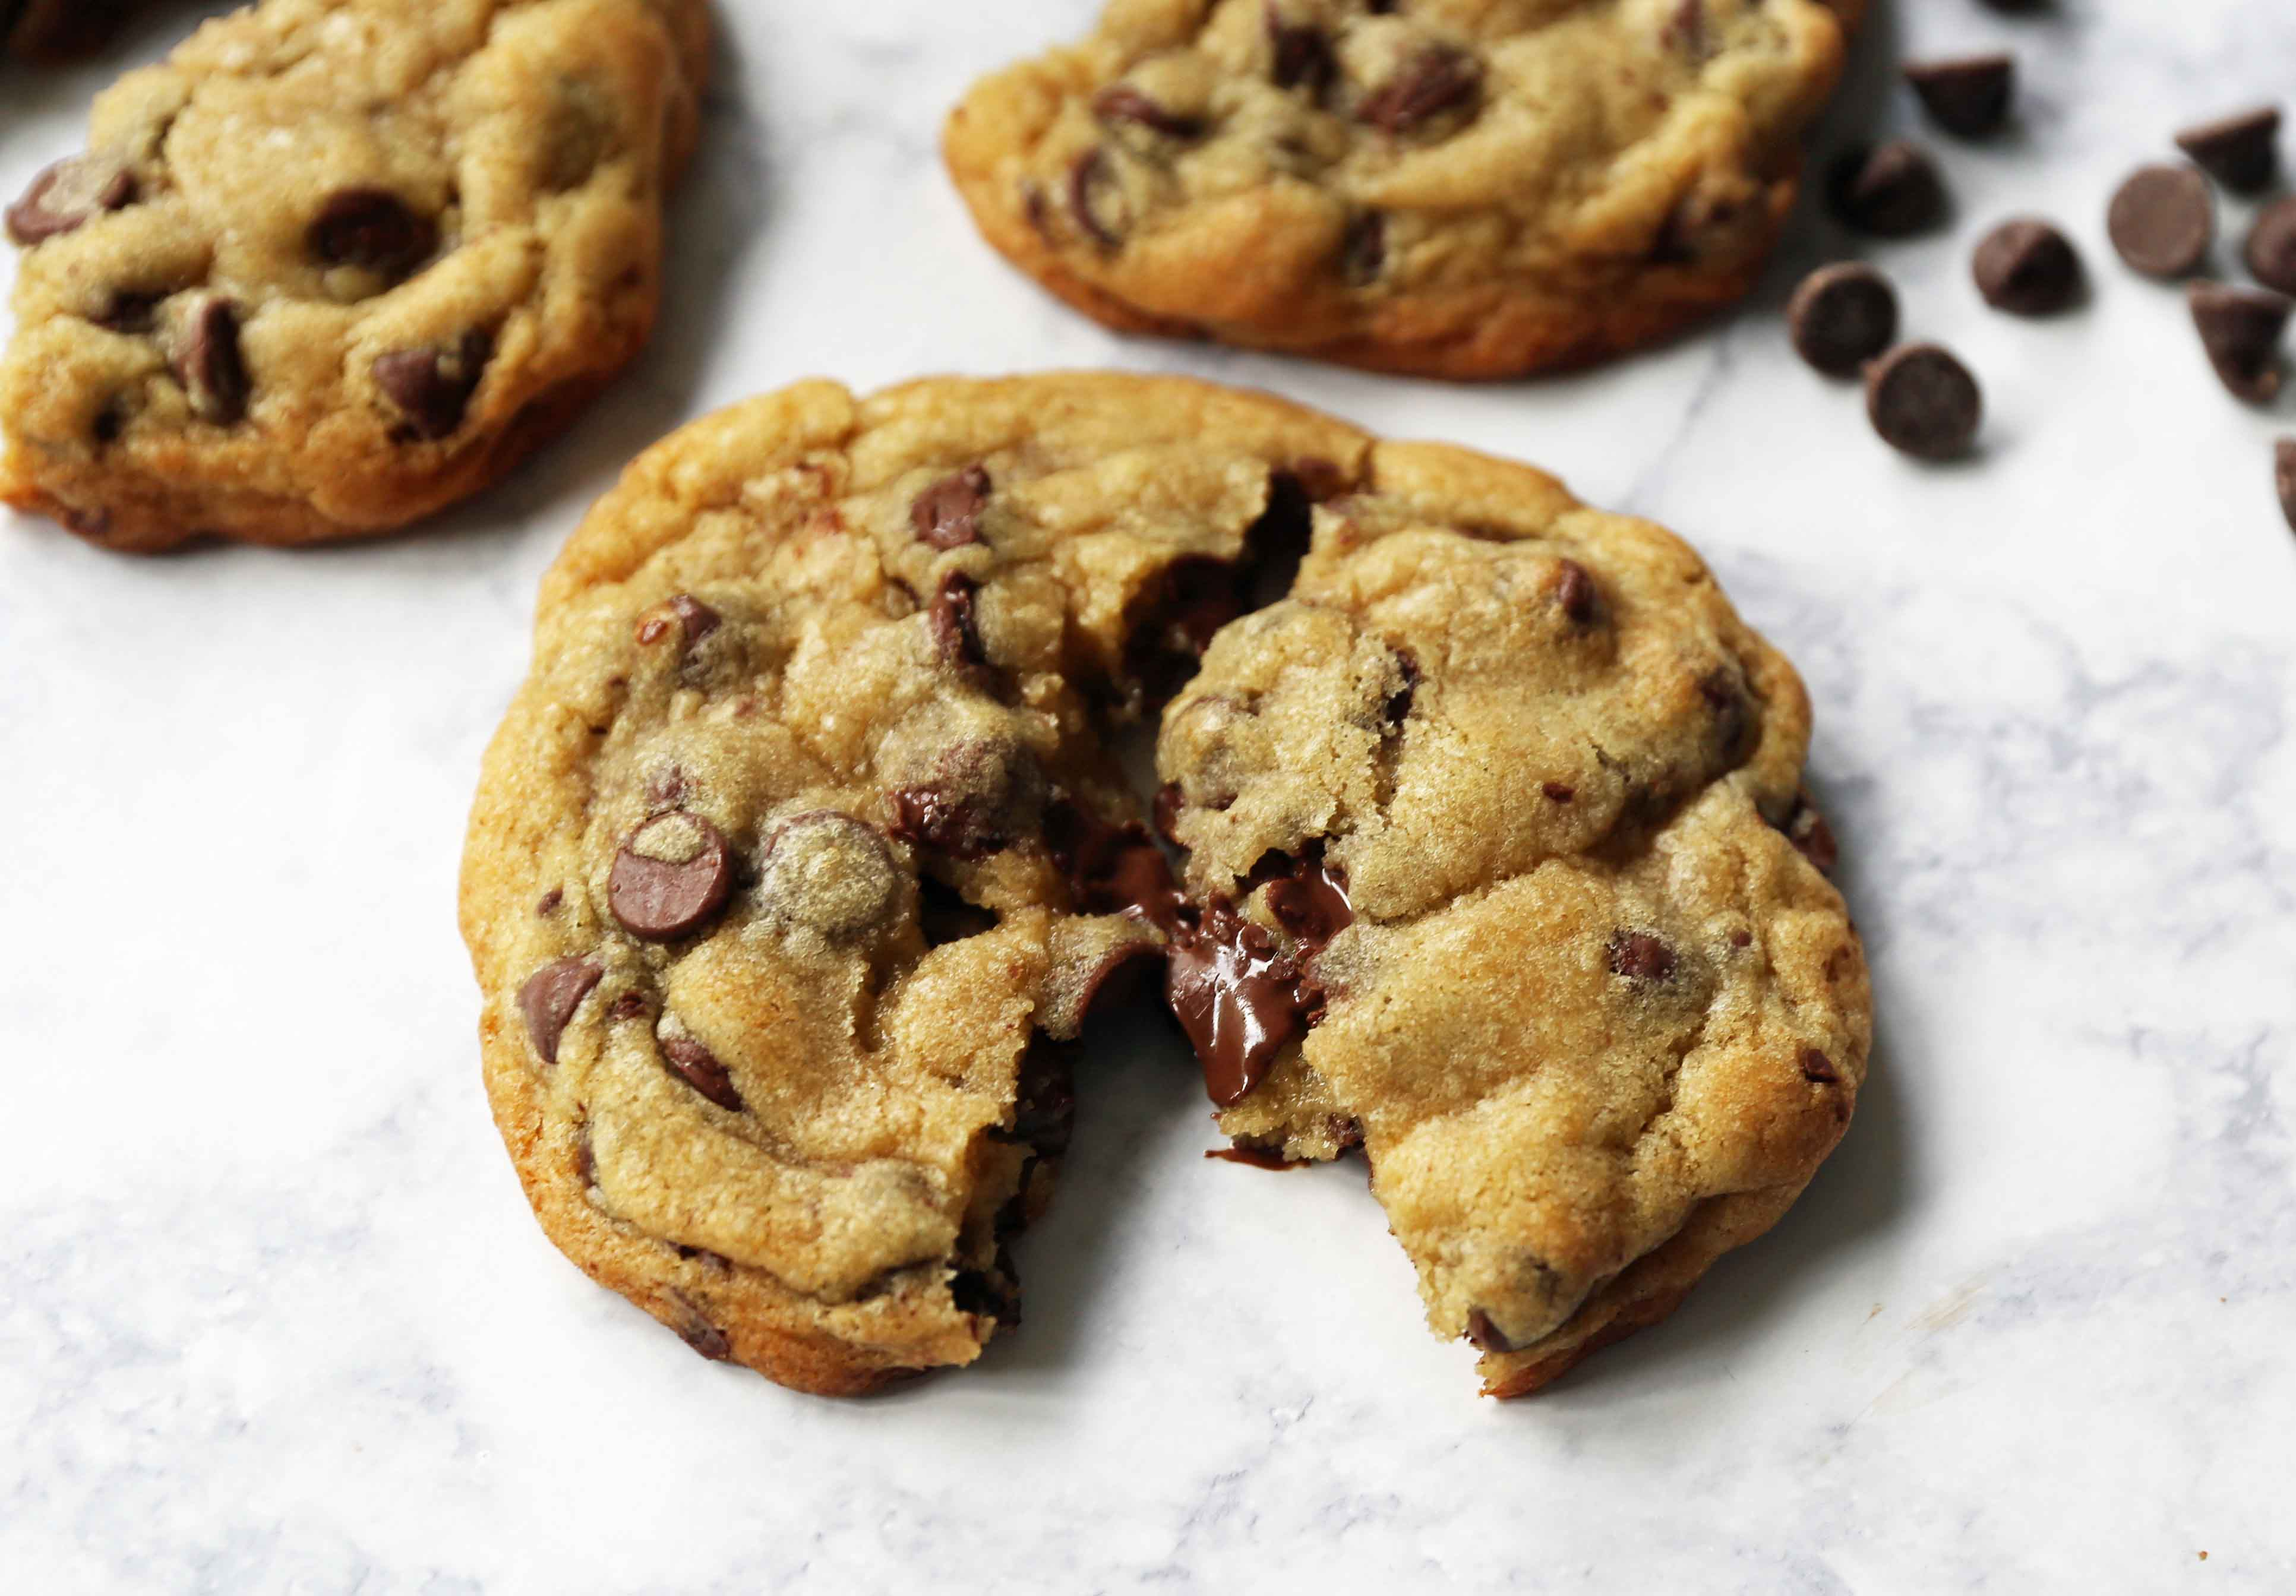 The BEST Chocolate Chip Cookie Recipe. How to make the best chocolate chip cookies in the world. These are hands down the most perfect chocolate chip cookies! Tips and tricks for making the best chocolate chip cookies. www.modernhoney.com #cookie #cookies #chocolatechipcookie #chocolatechipcookies #homemade #cookierecipe #bestchocolatechipcookies